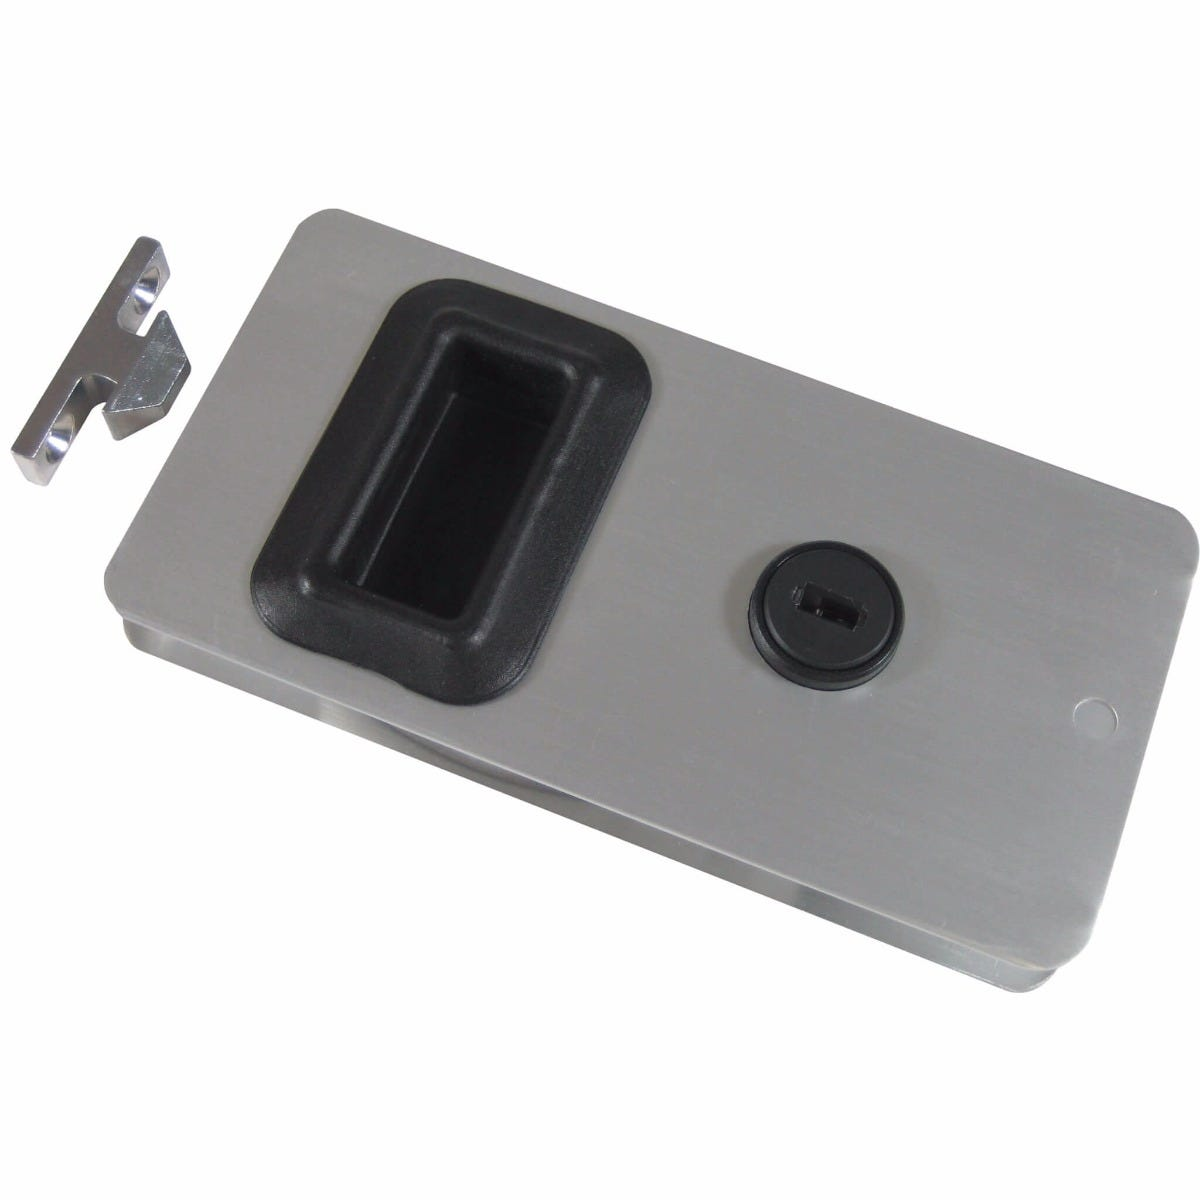 ms latch mc latches email marine friend htm a mobella sliding doors larger and p slim small door photo